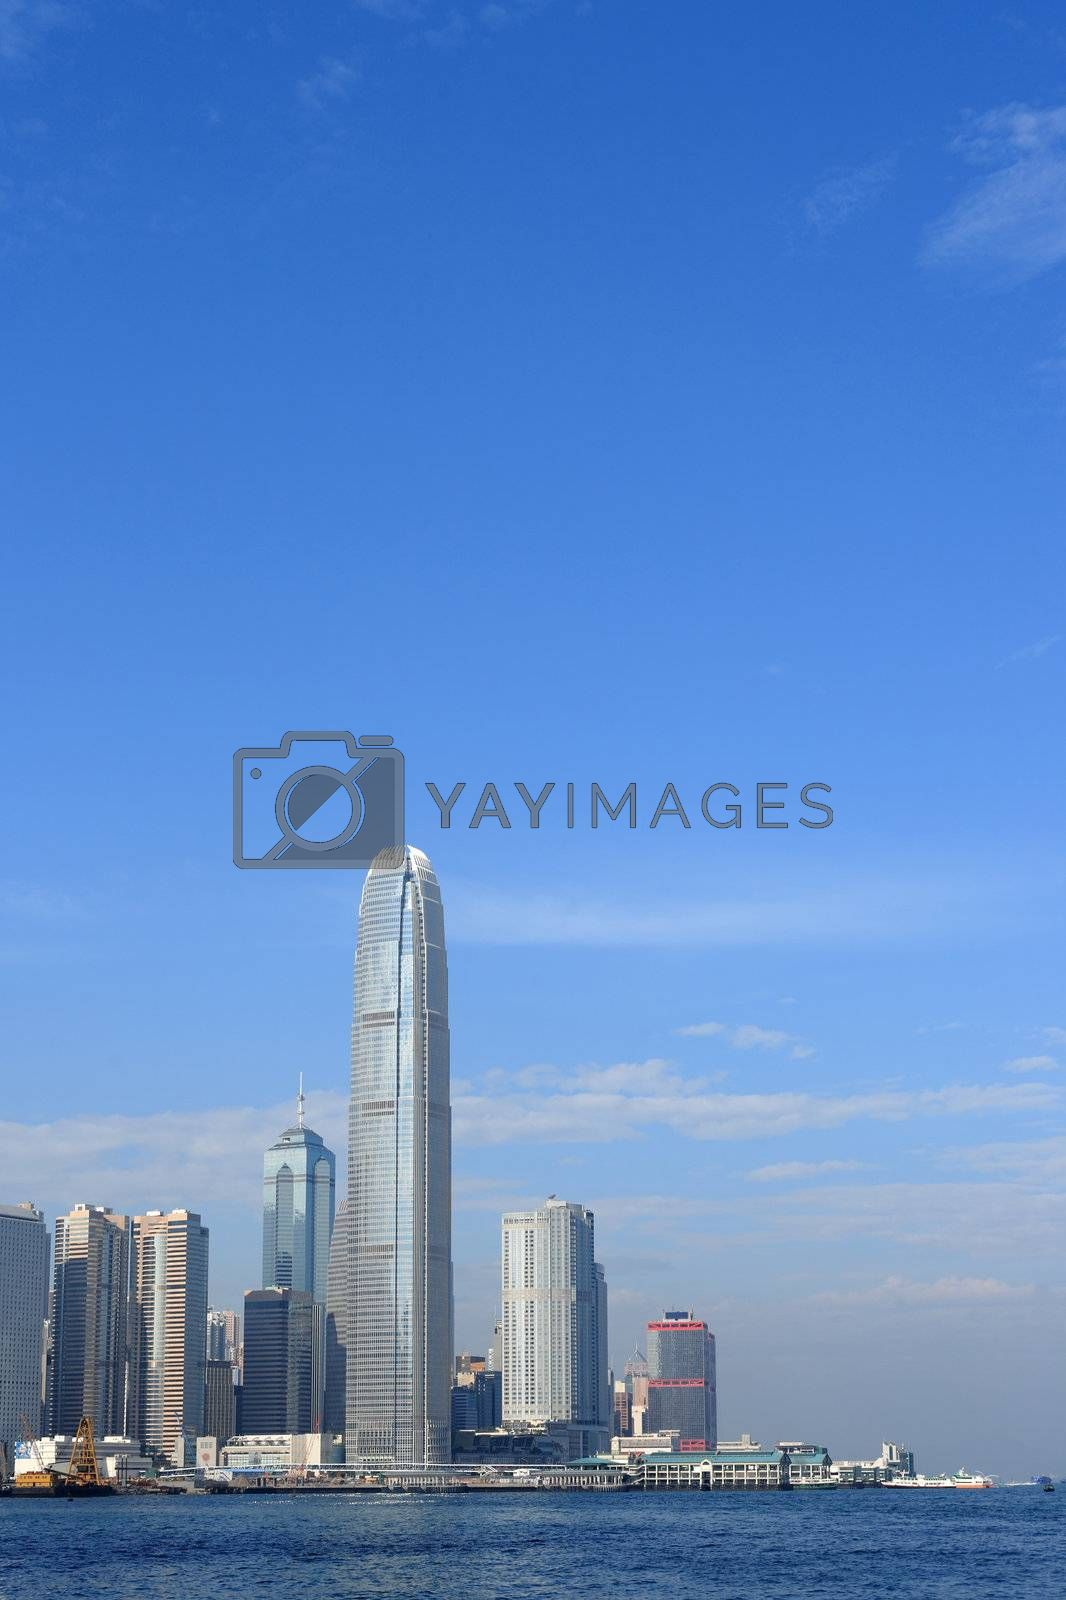 Royalty free image of International Finance Centre by leungchopan